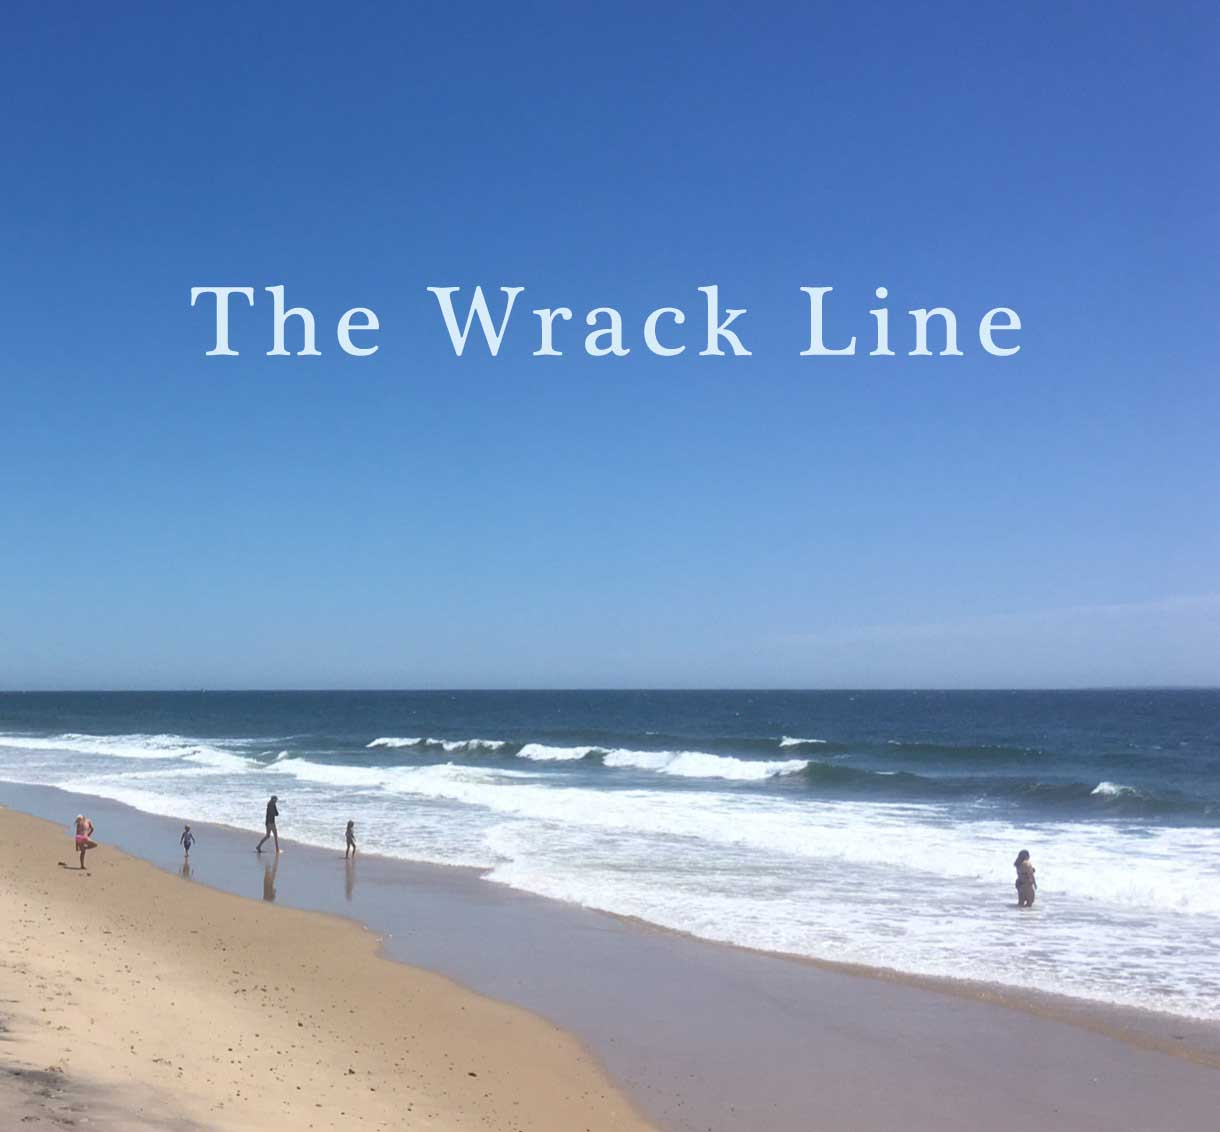 Title: The Wrack Line